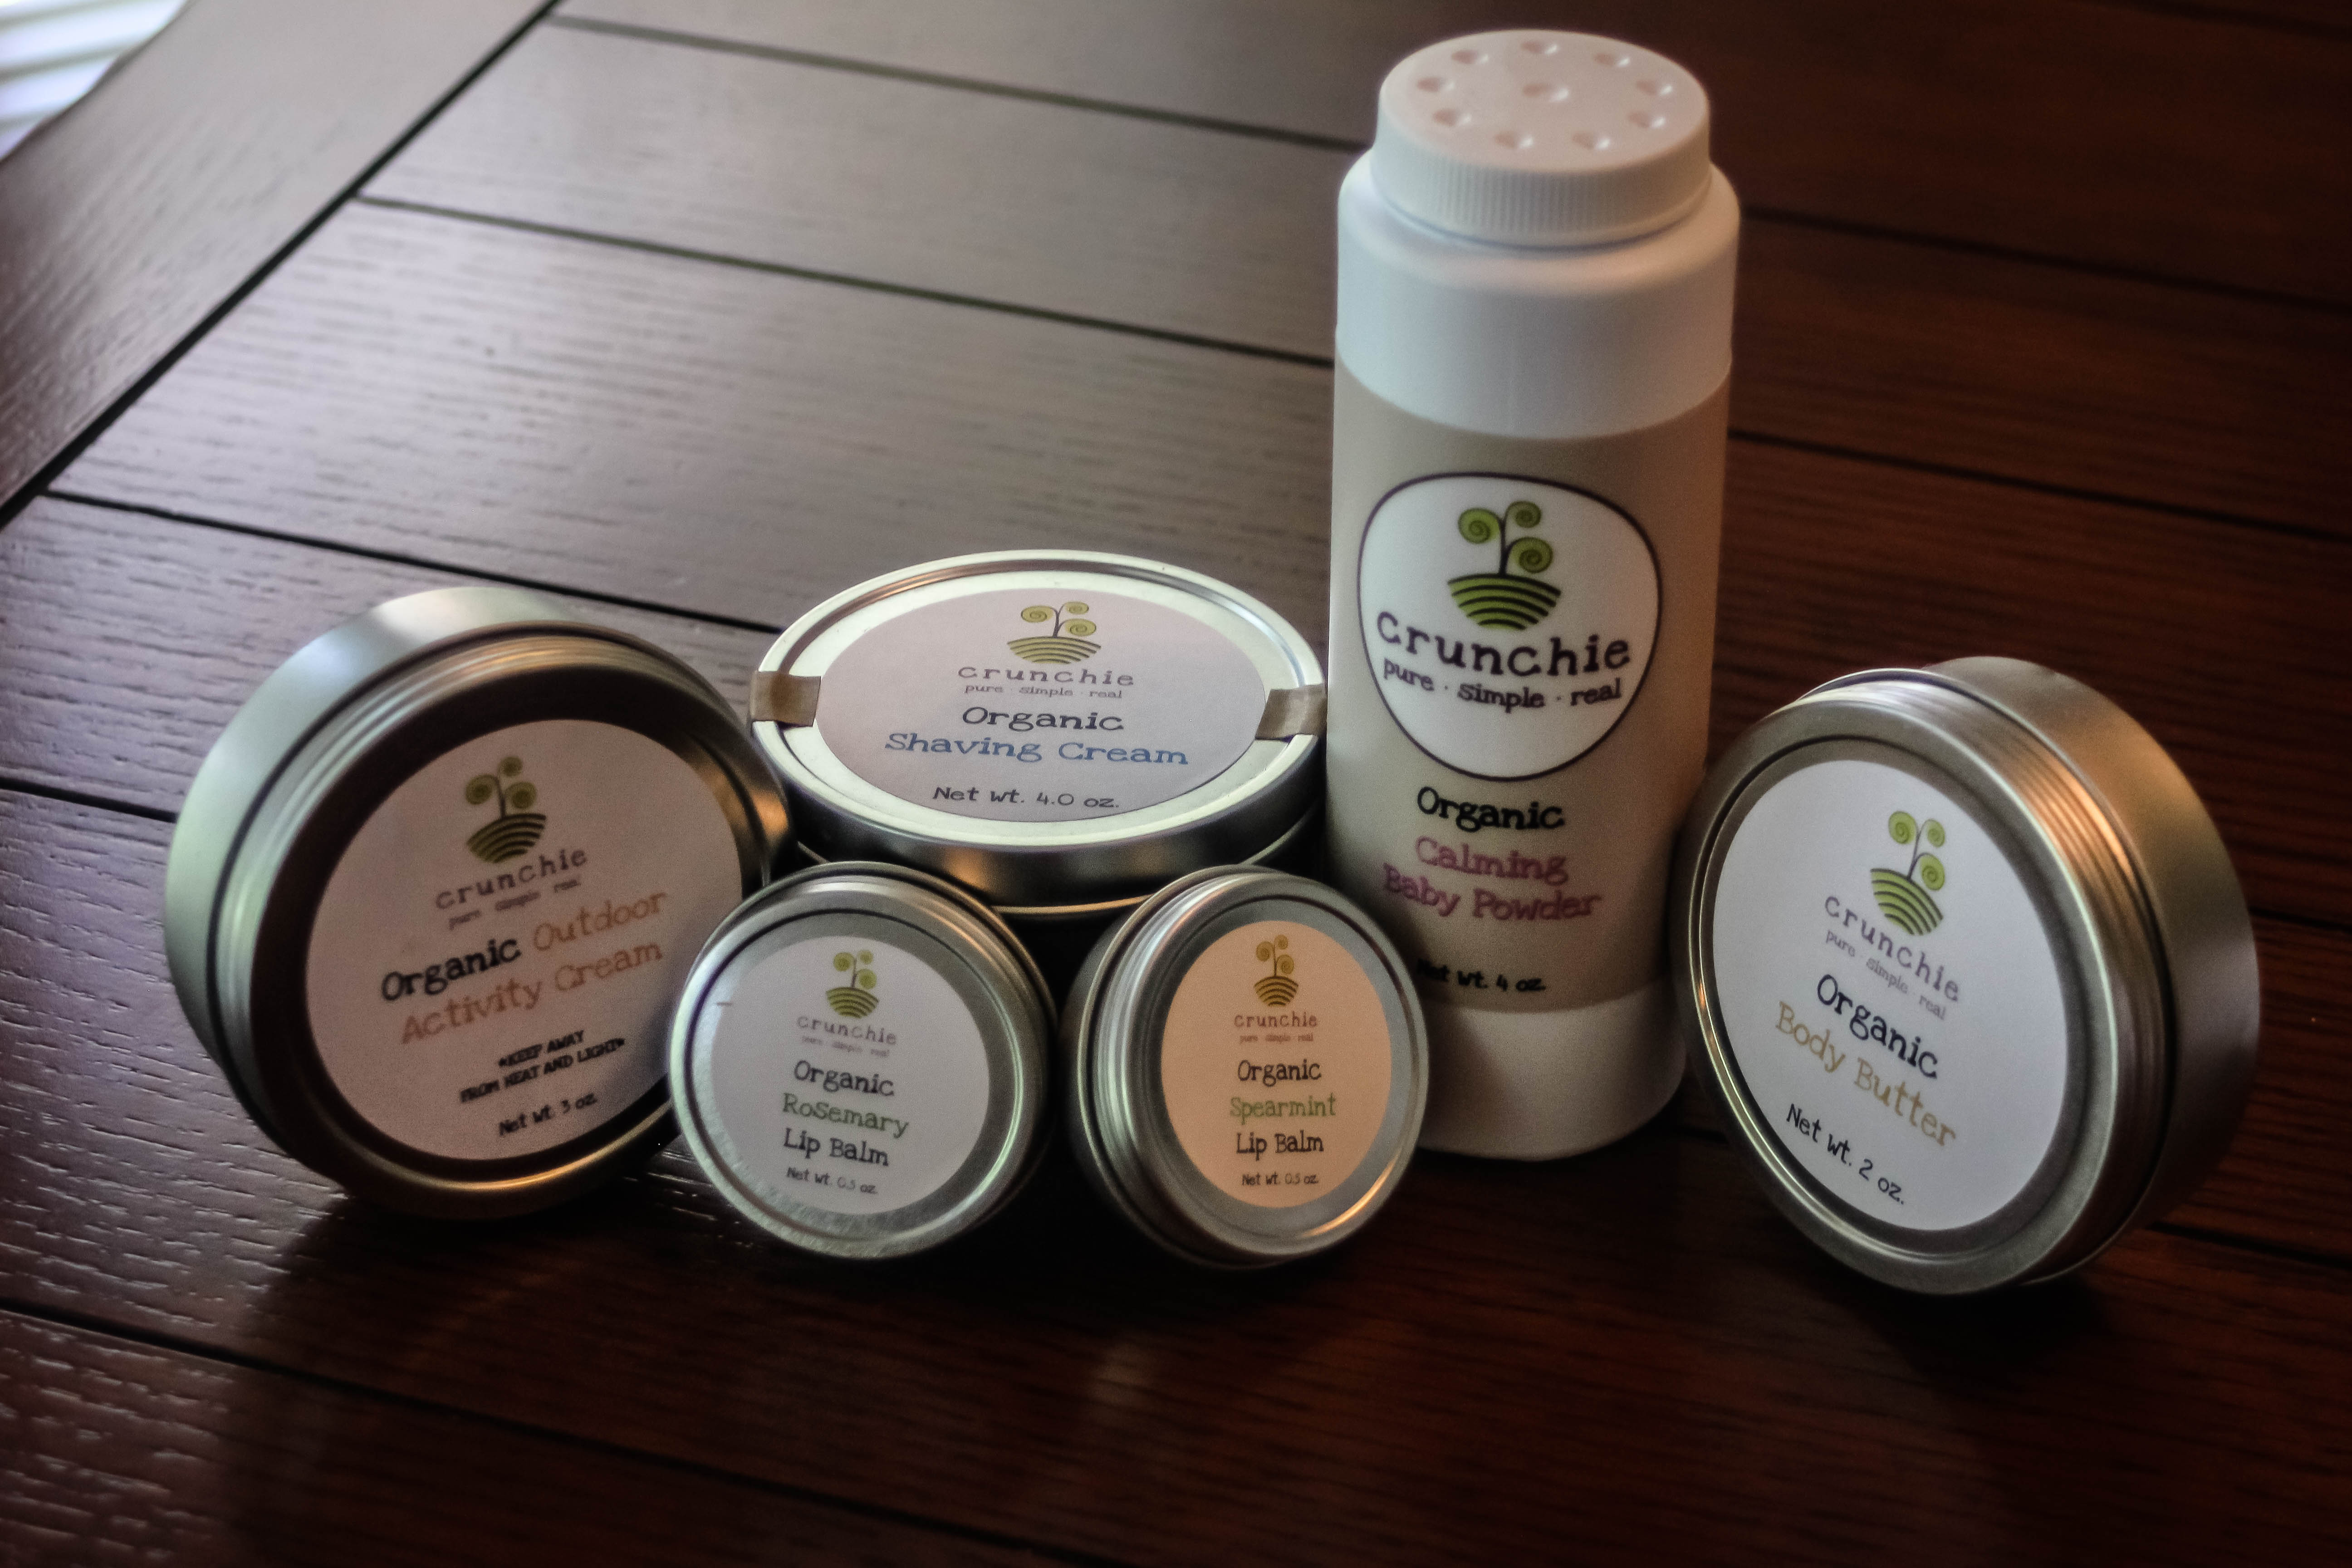 Crunchie Life and SirenSistersElixirs Giveaway (Essential Oil and Natural Product Swag)